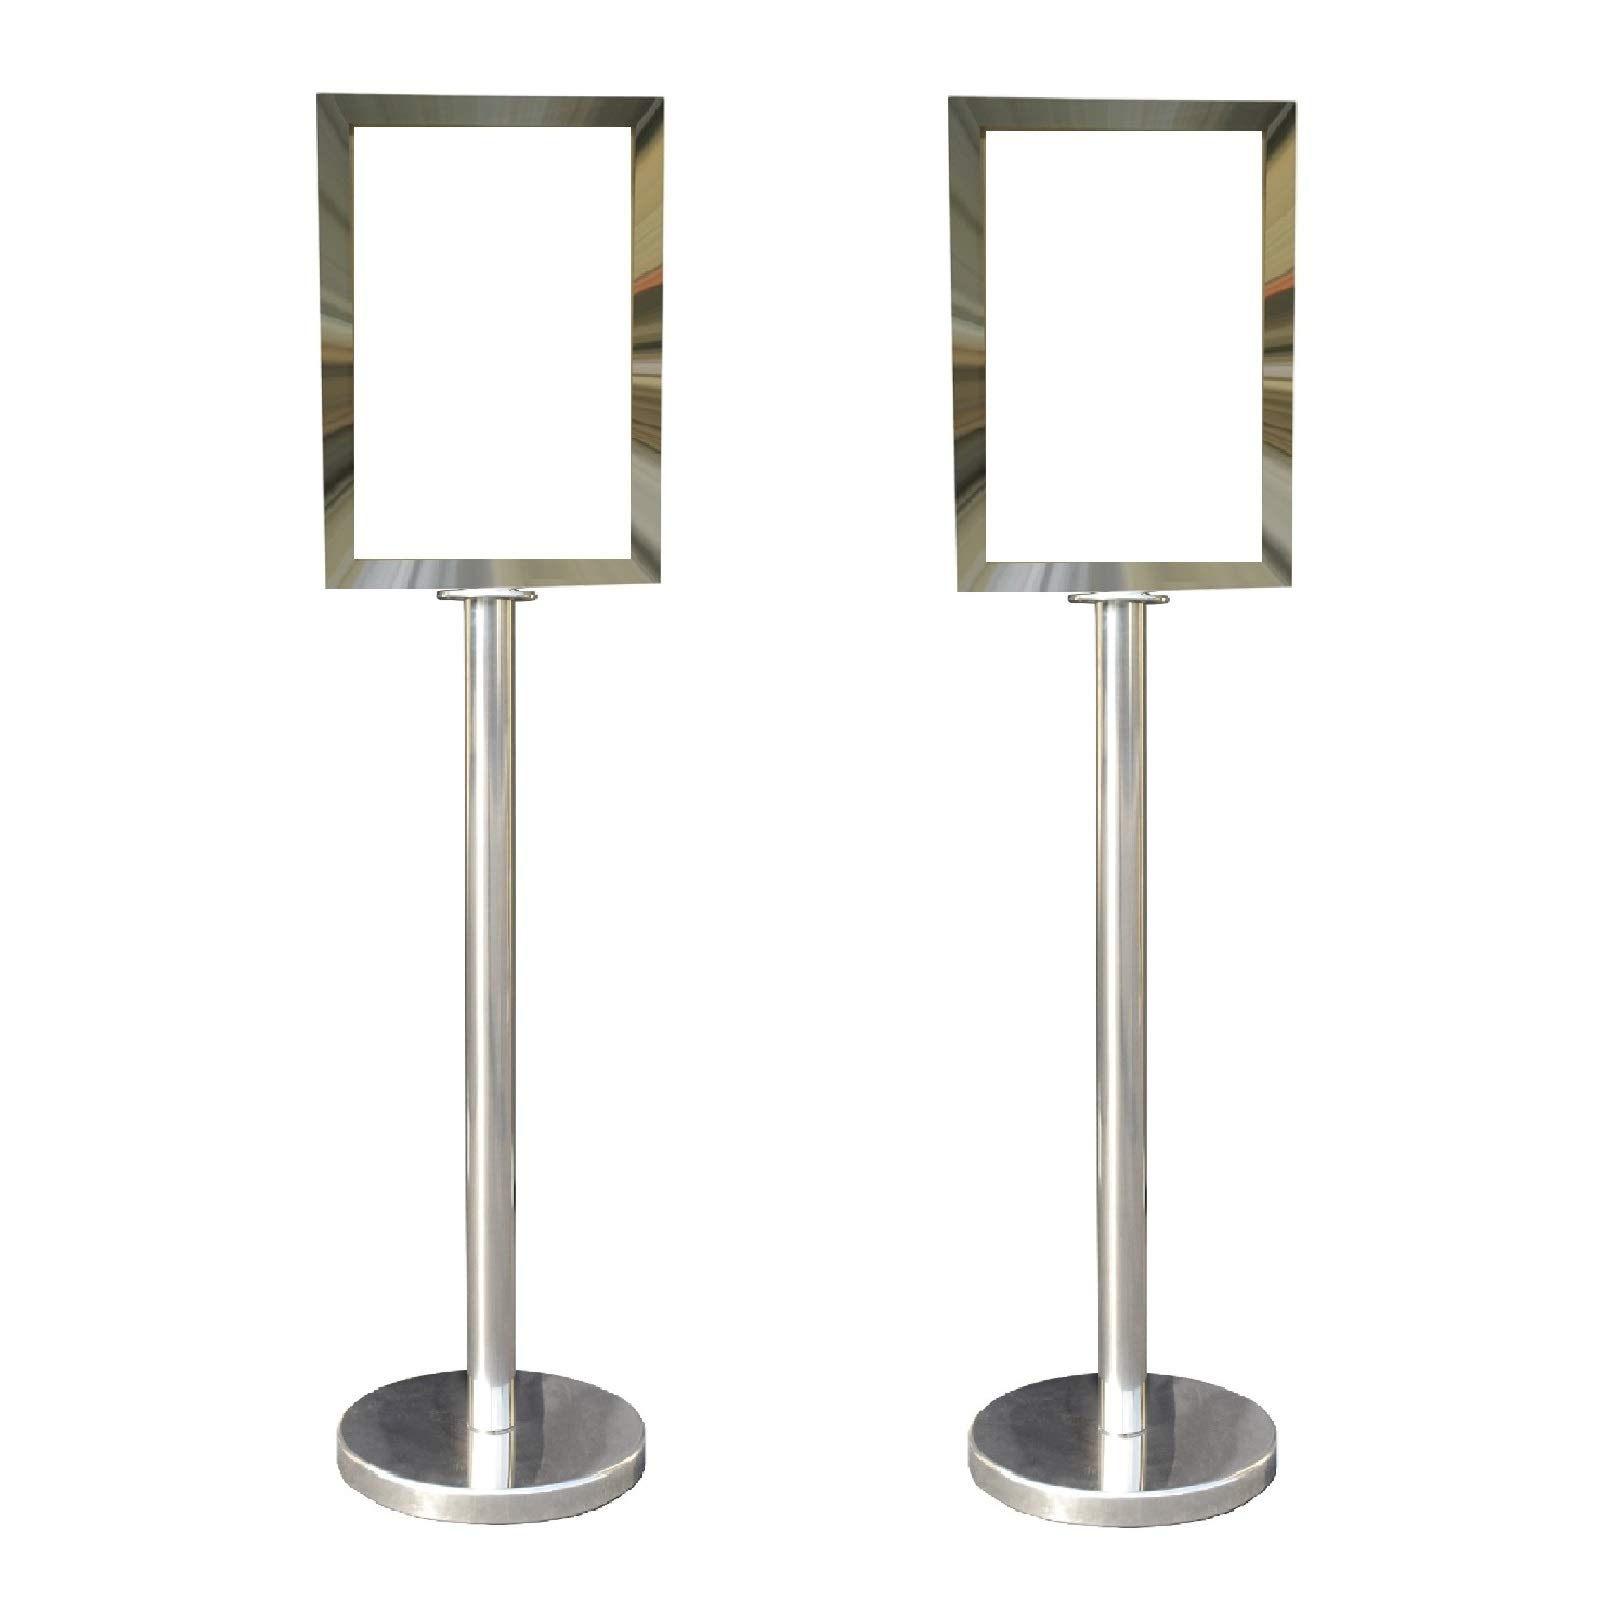 Mirror Rope Stanchion in 3 pcs Set, VIP Crowd Control (Display Stanchion) by VIP Crowd Control